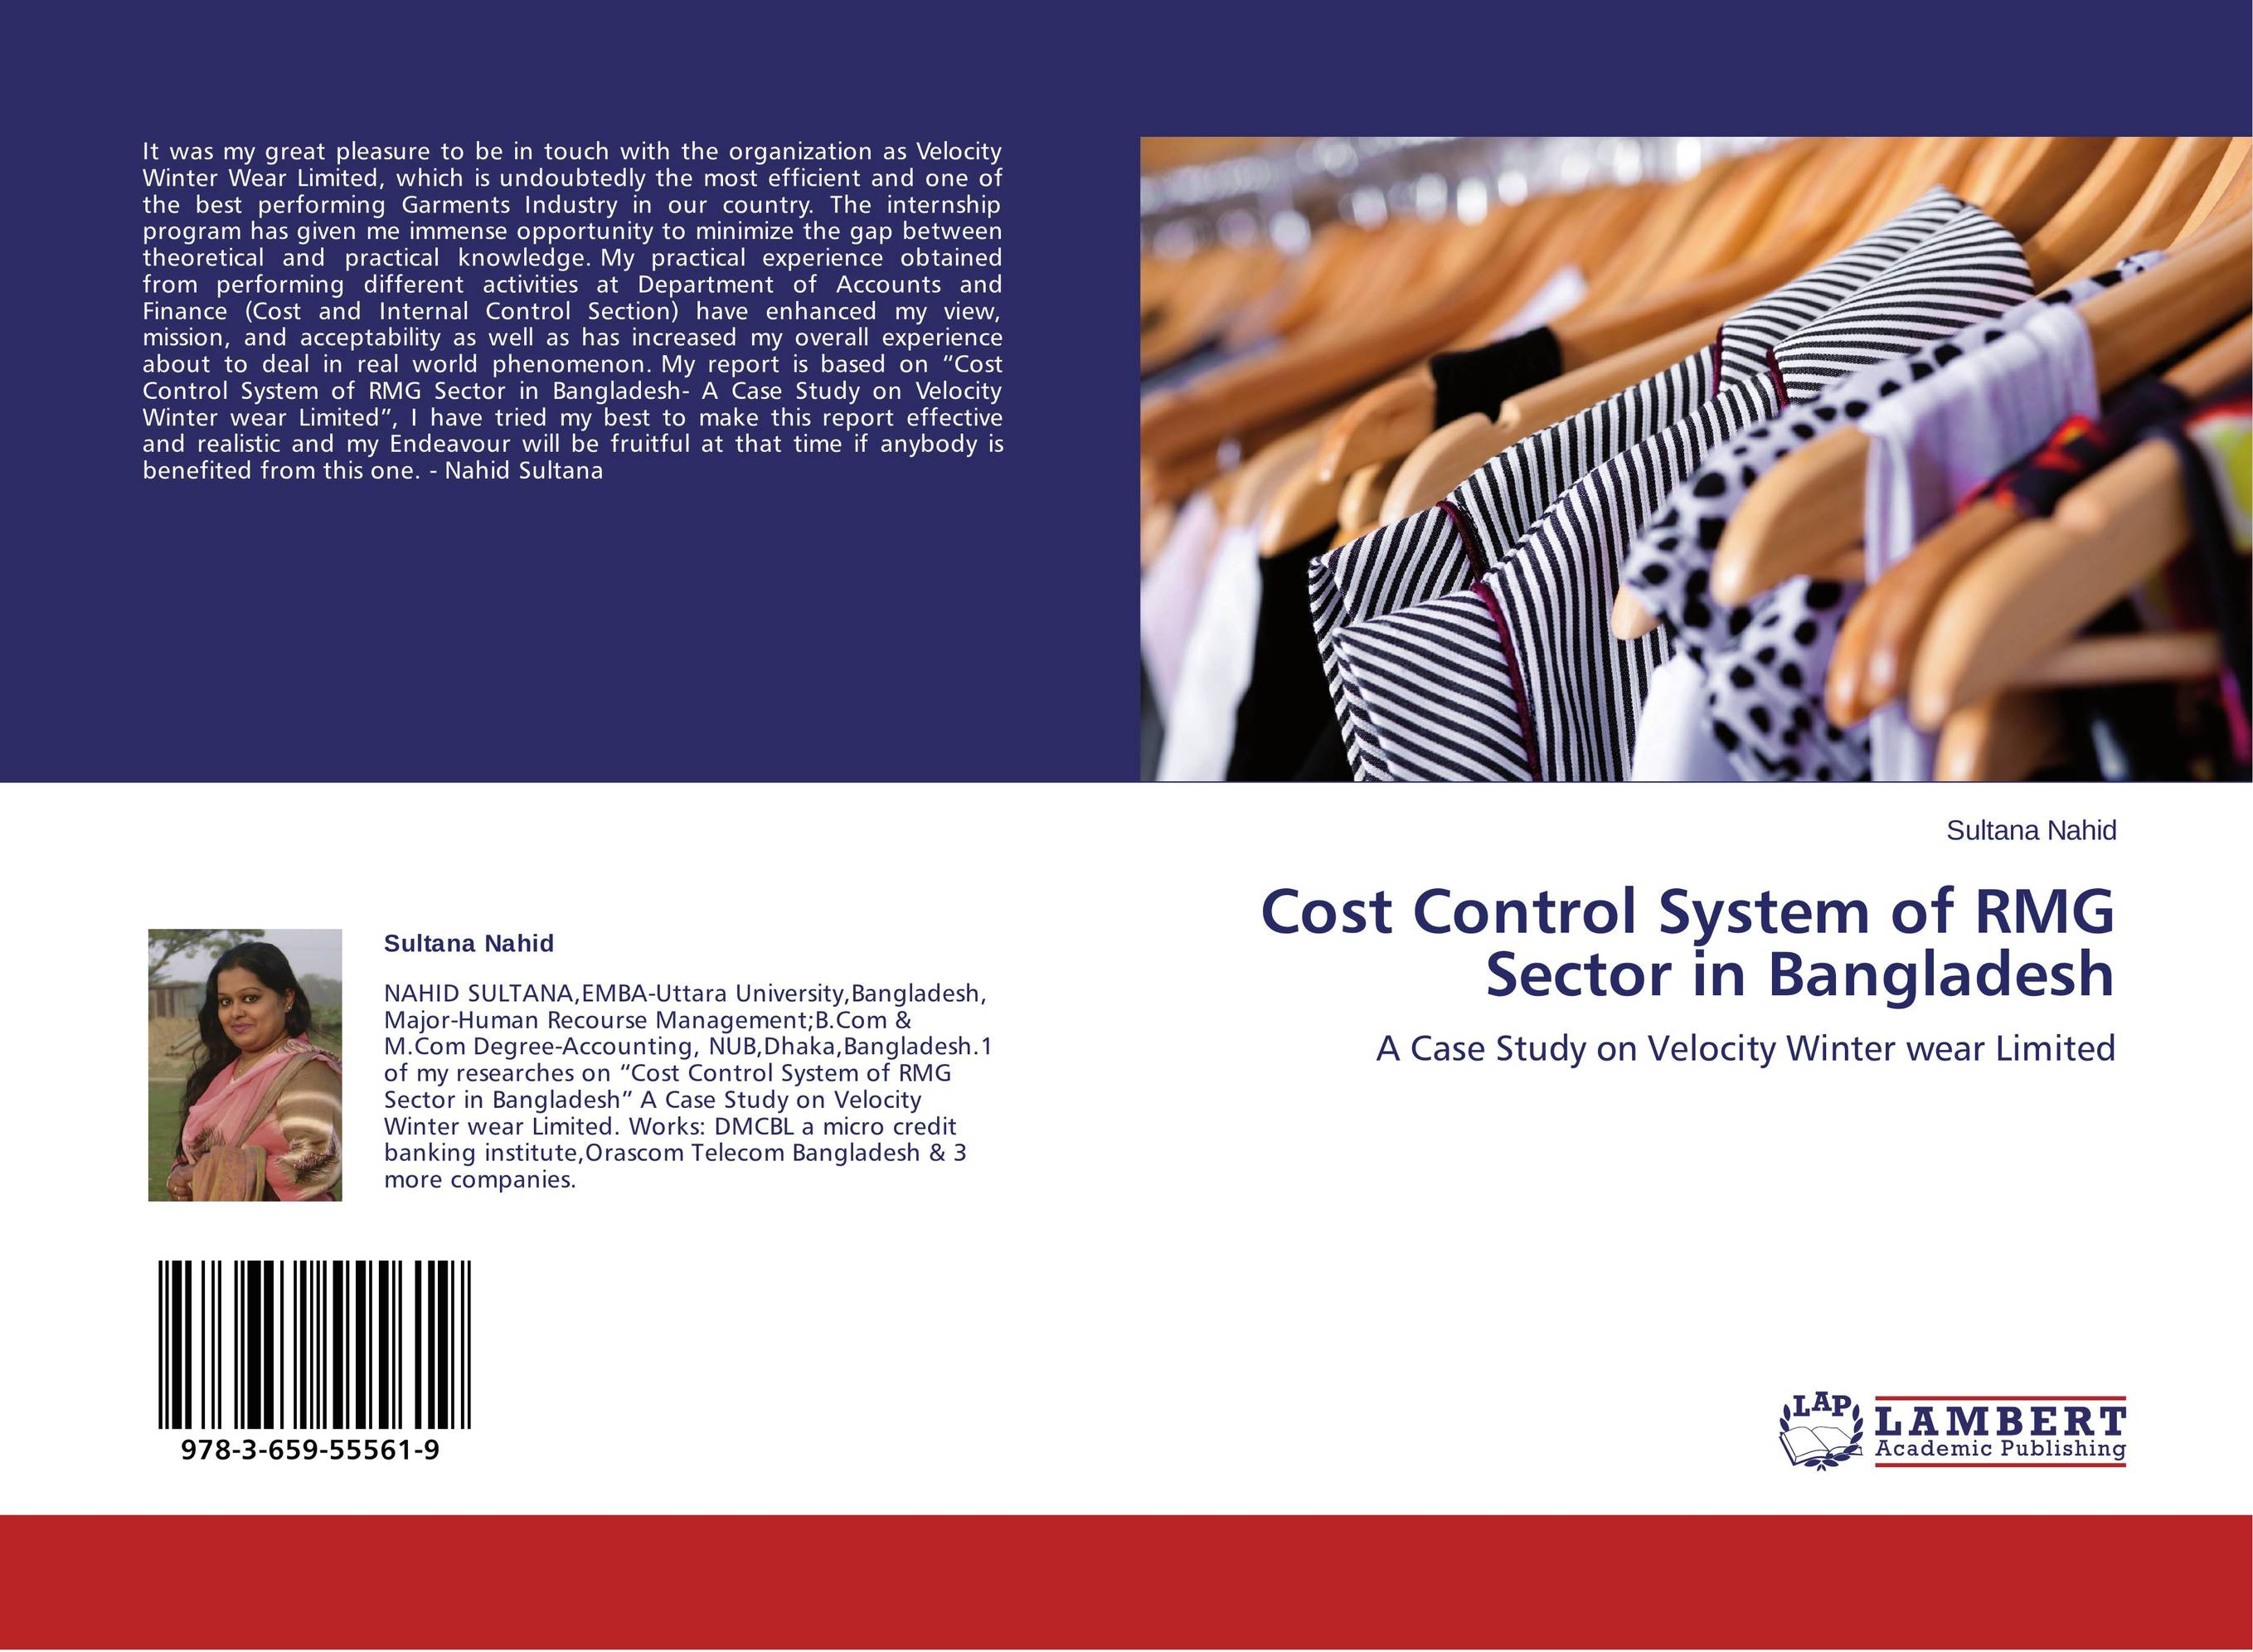 report internal control and cost benefit Management's report on internal control over financial reporting 1  amortization of prior service cost included in net periodic benefit cost (income).